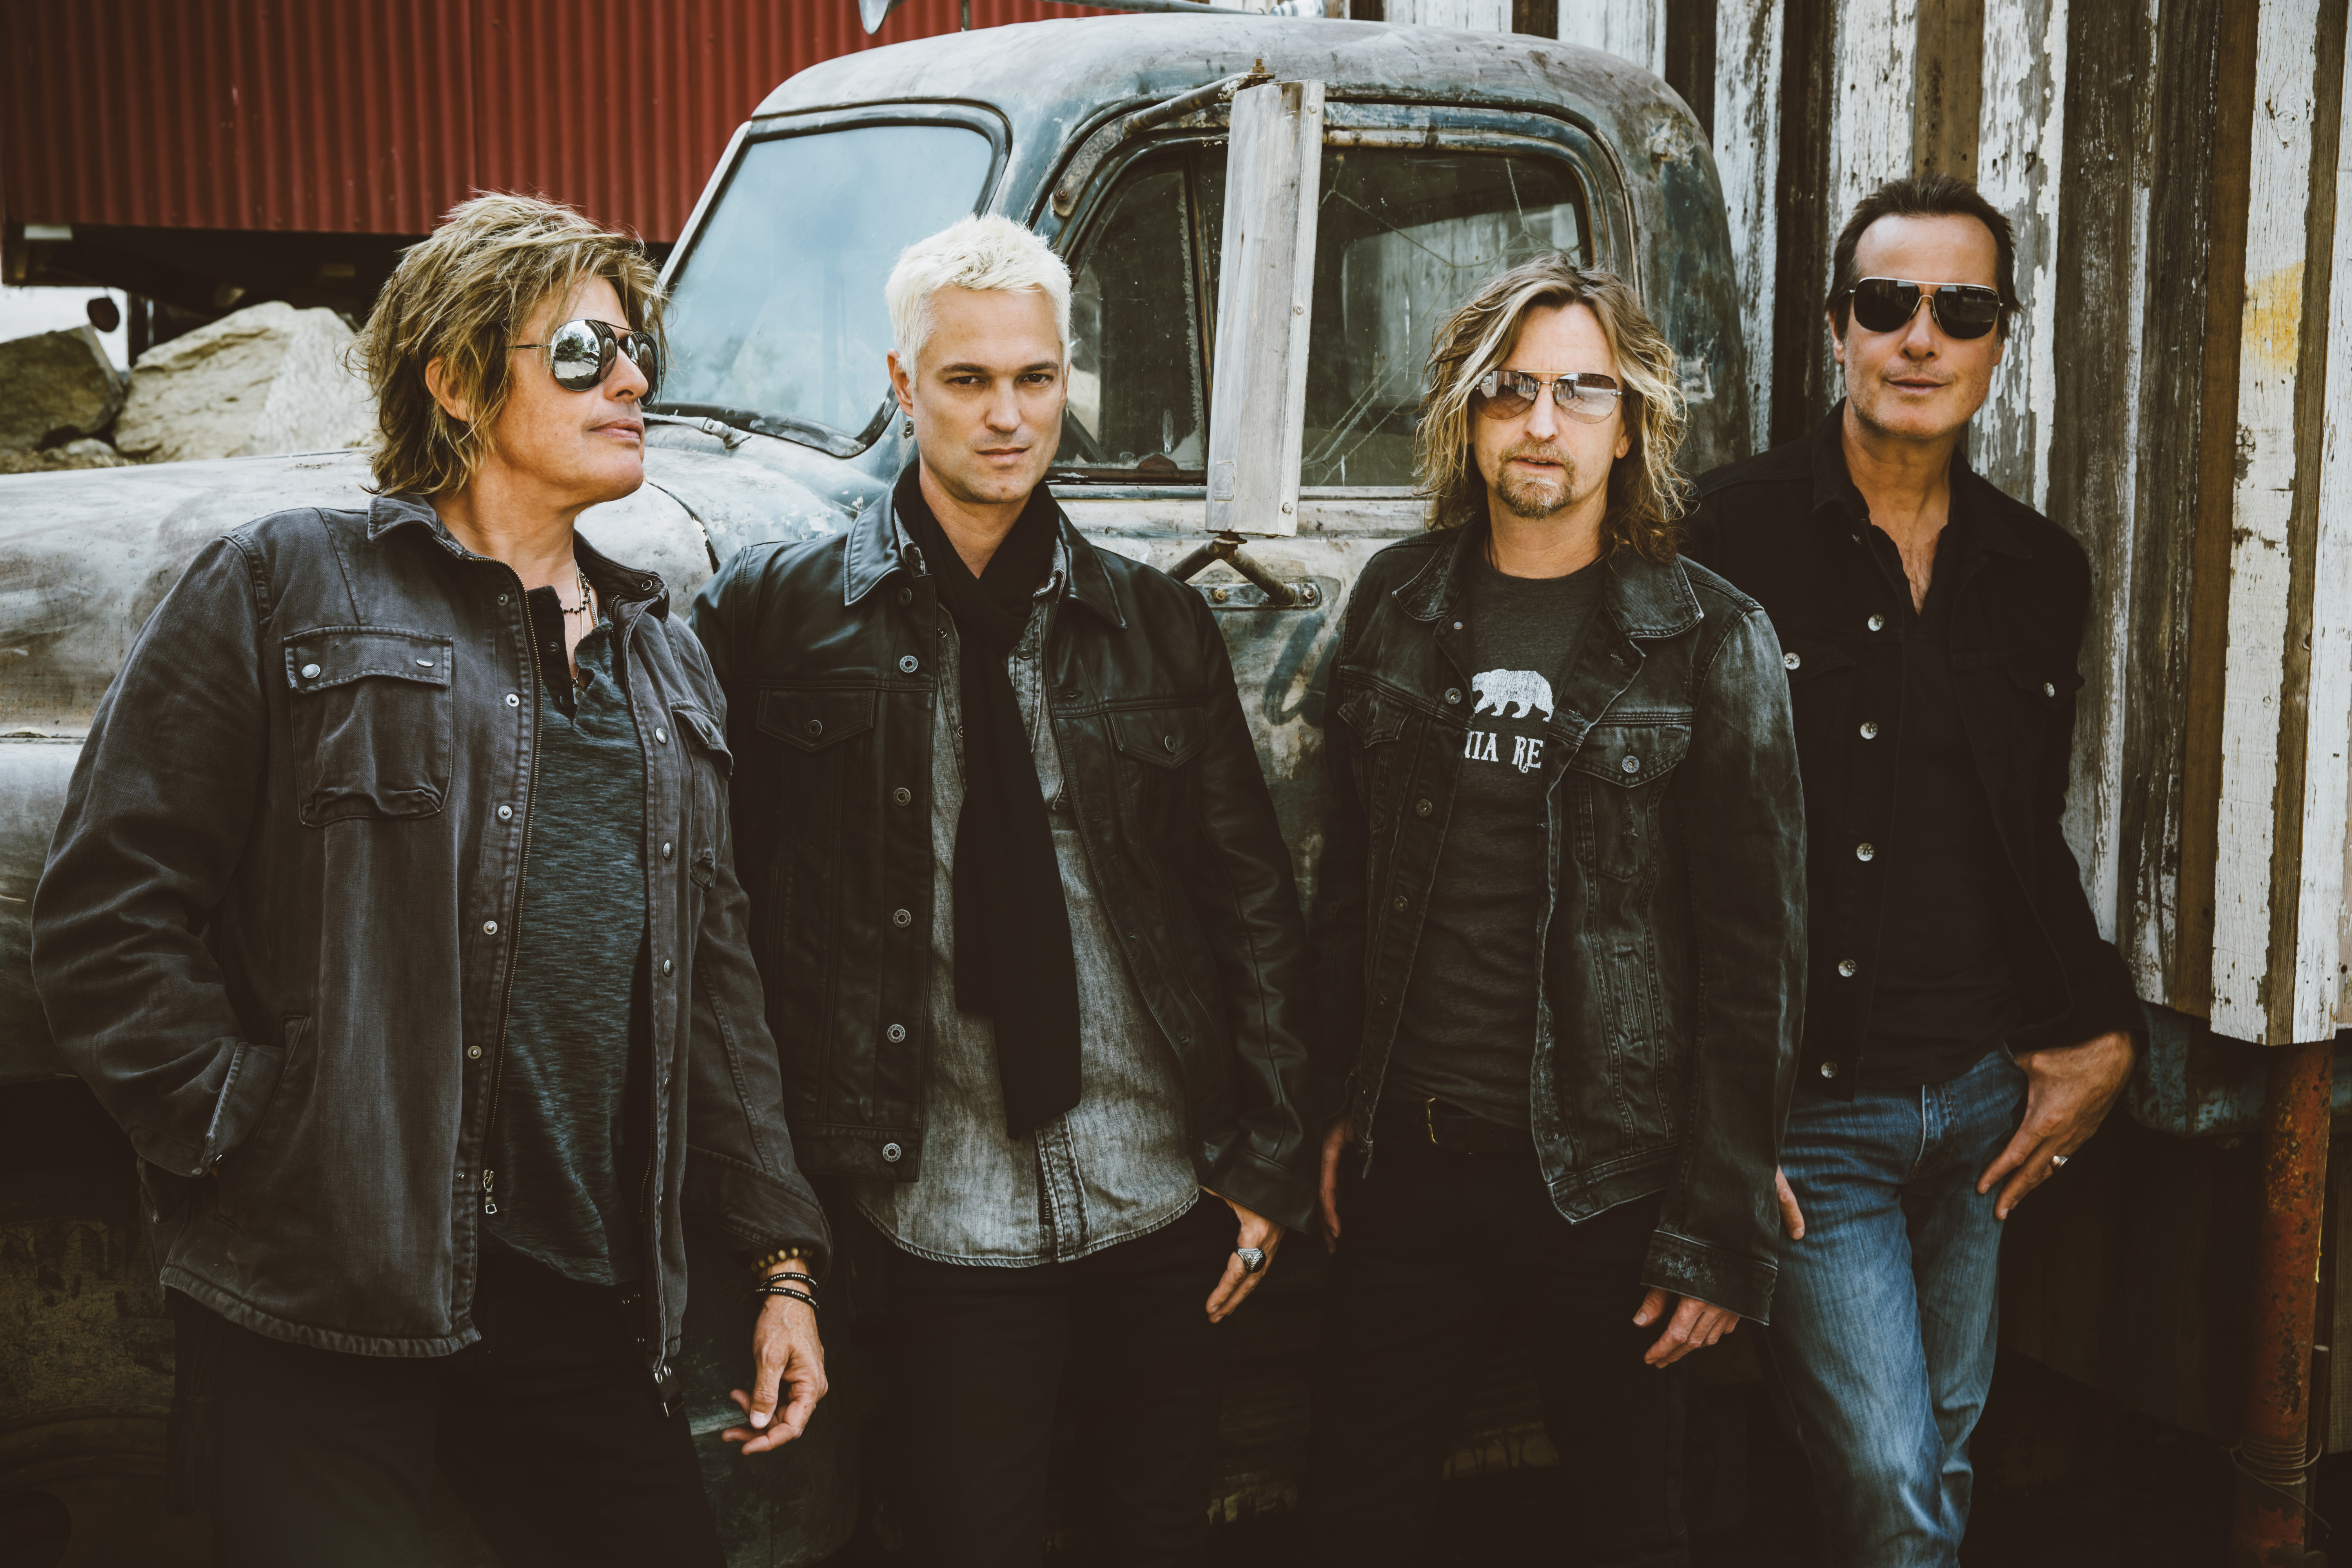 Stone Temple Pilots to Rock the Chevrolet Detroit Grand Prix presented by Lear on Sunday, June 2